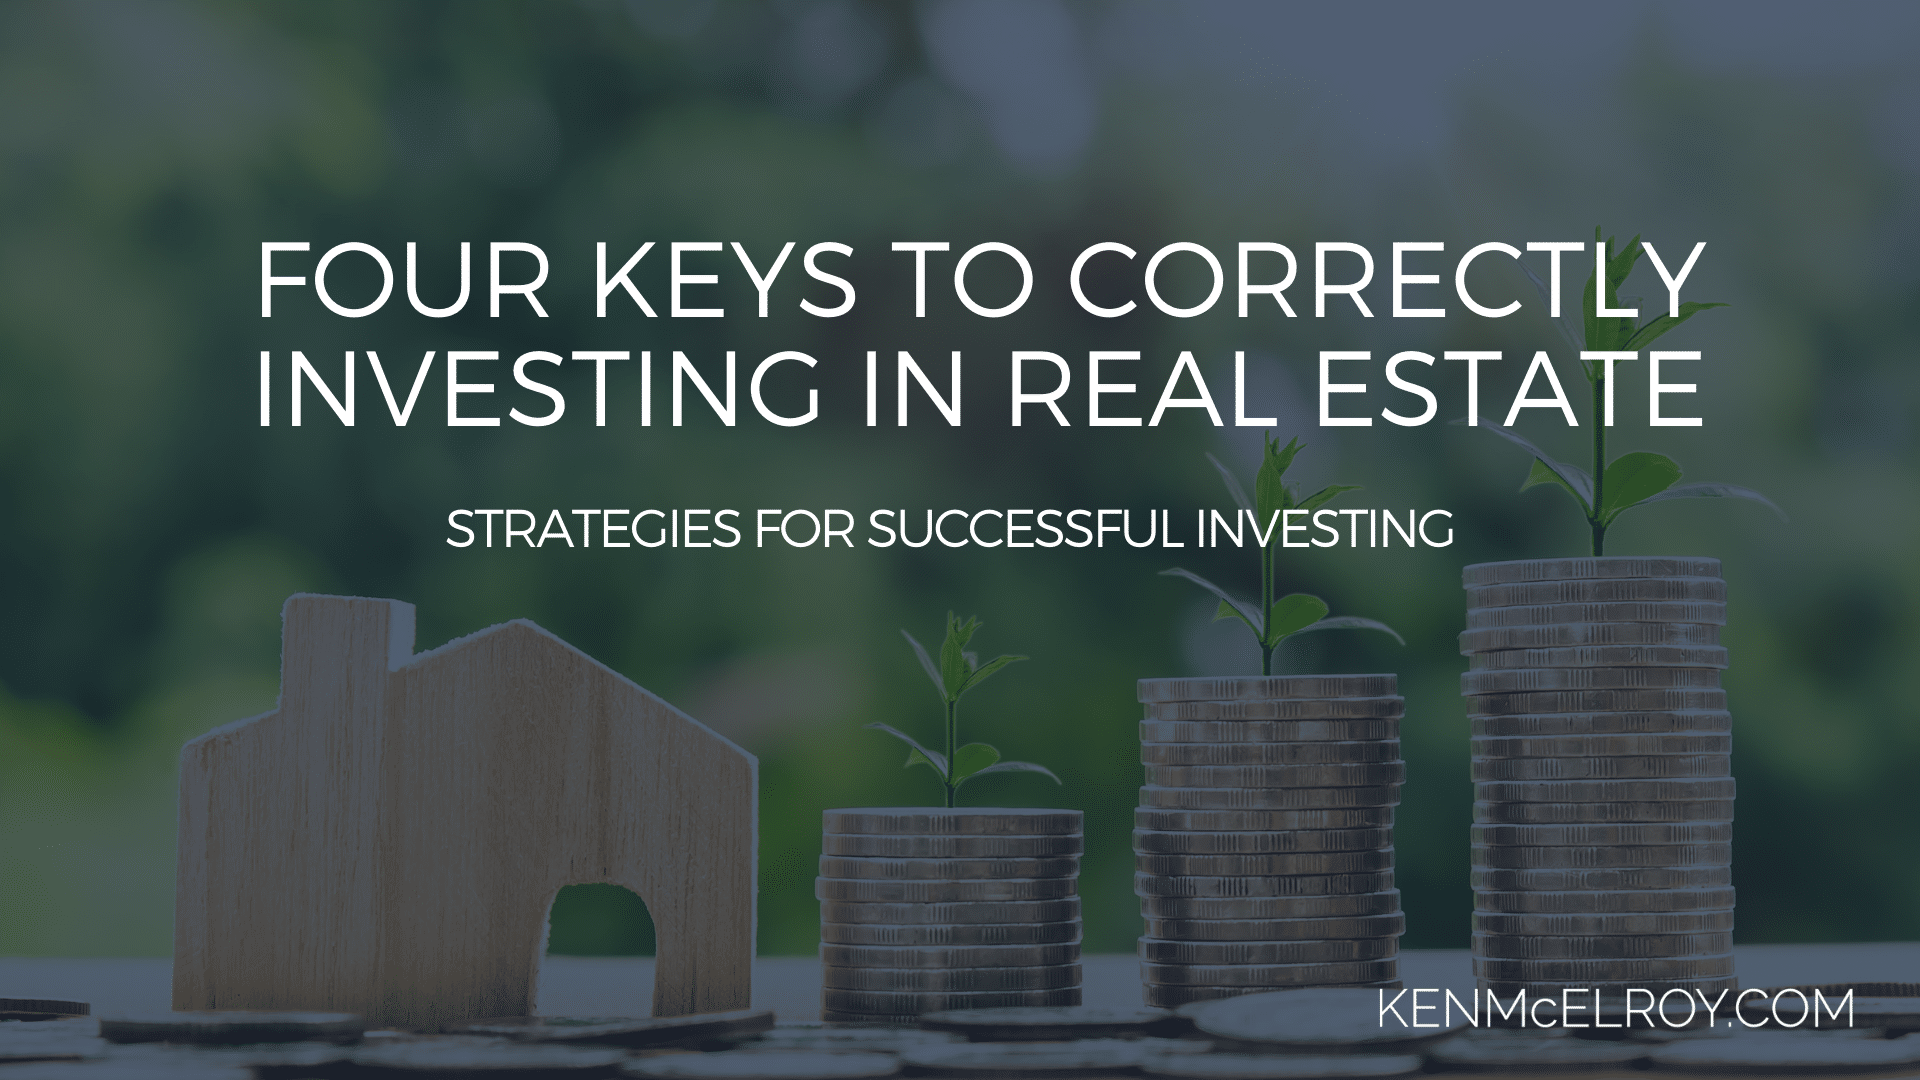 Four Keys to Correctly Investing in Real Estate | Ken McElroy Image